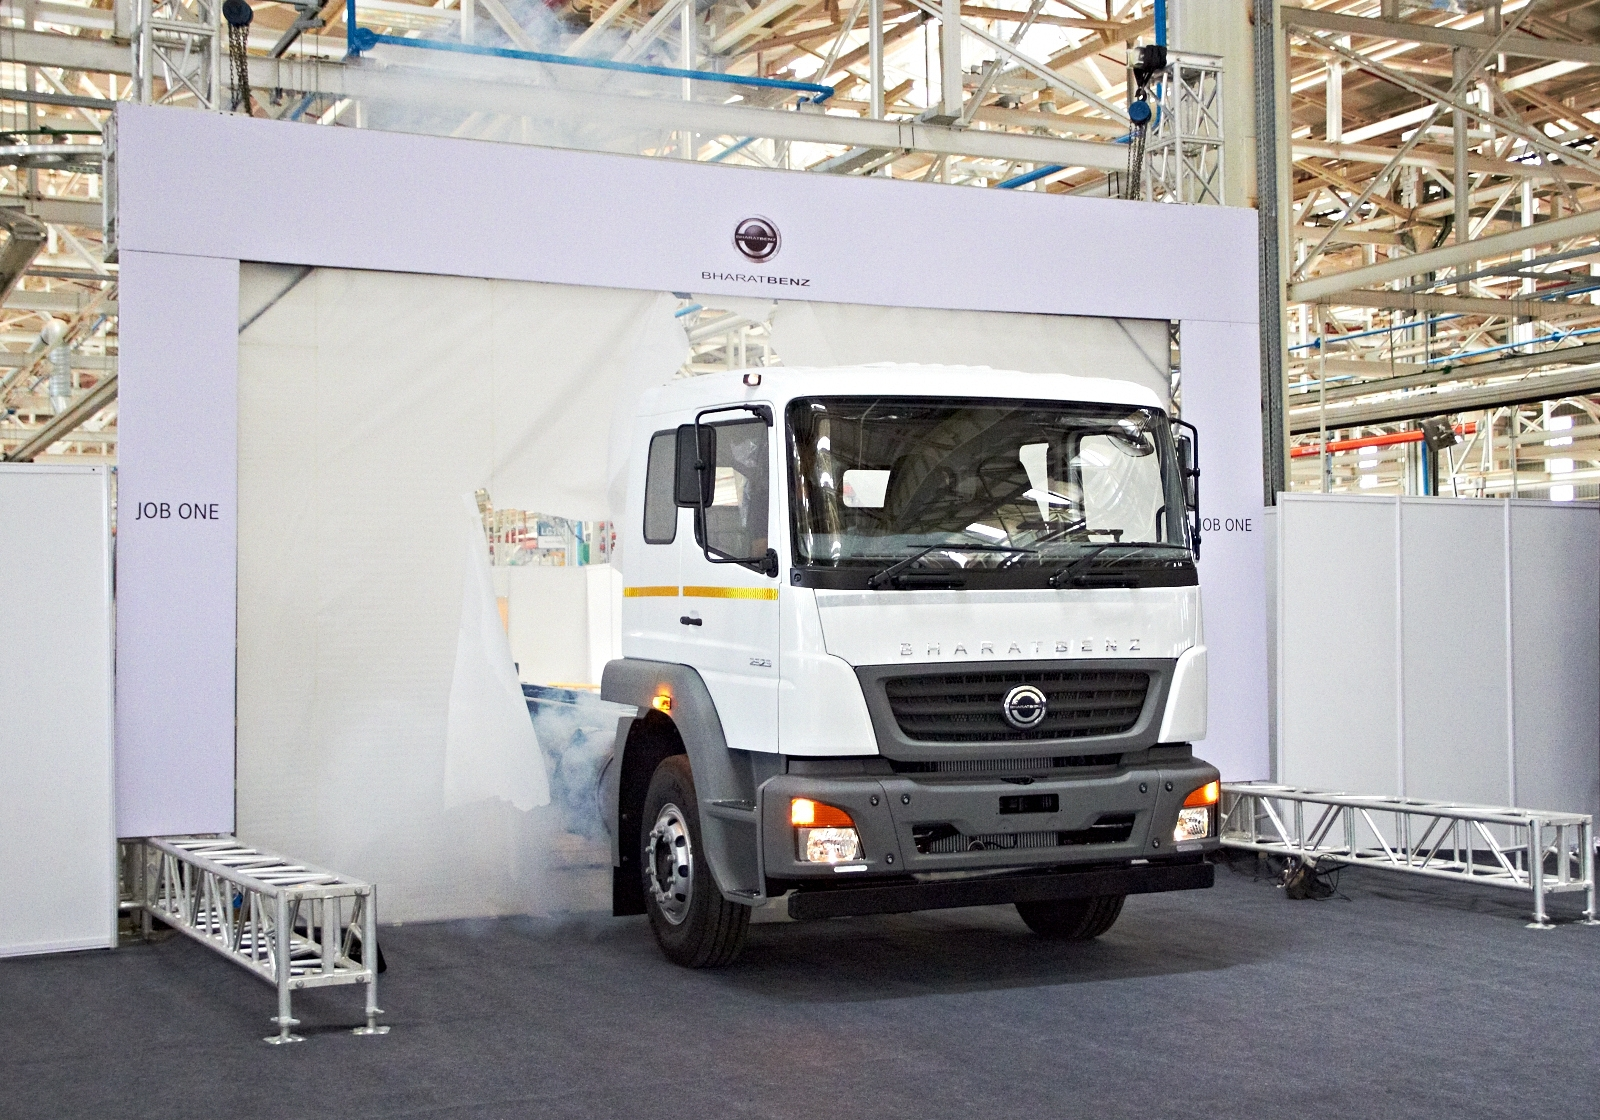 BharatBenz truck production begins First vehicle rolls out of the assembly line